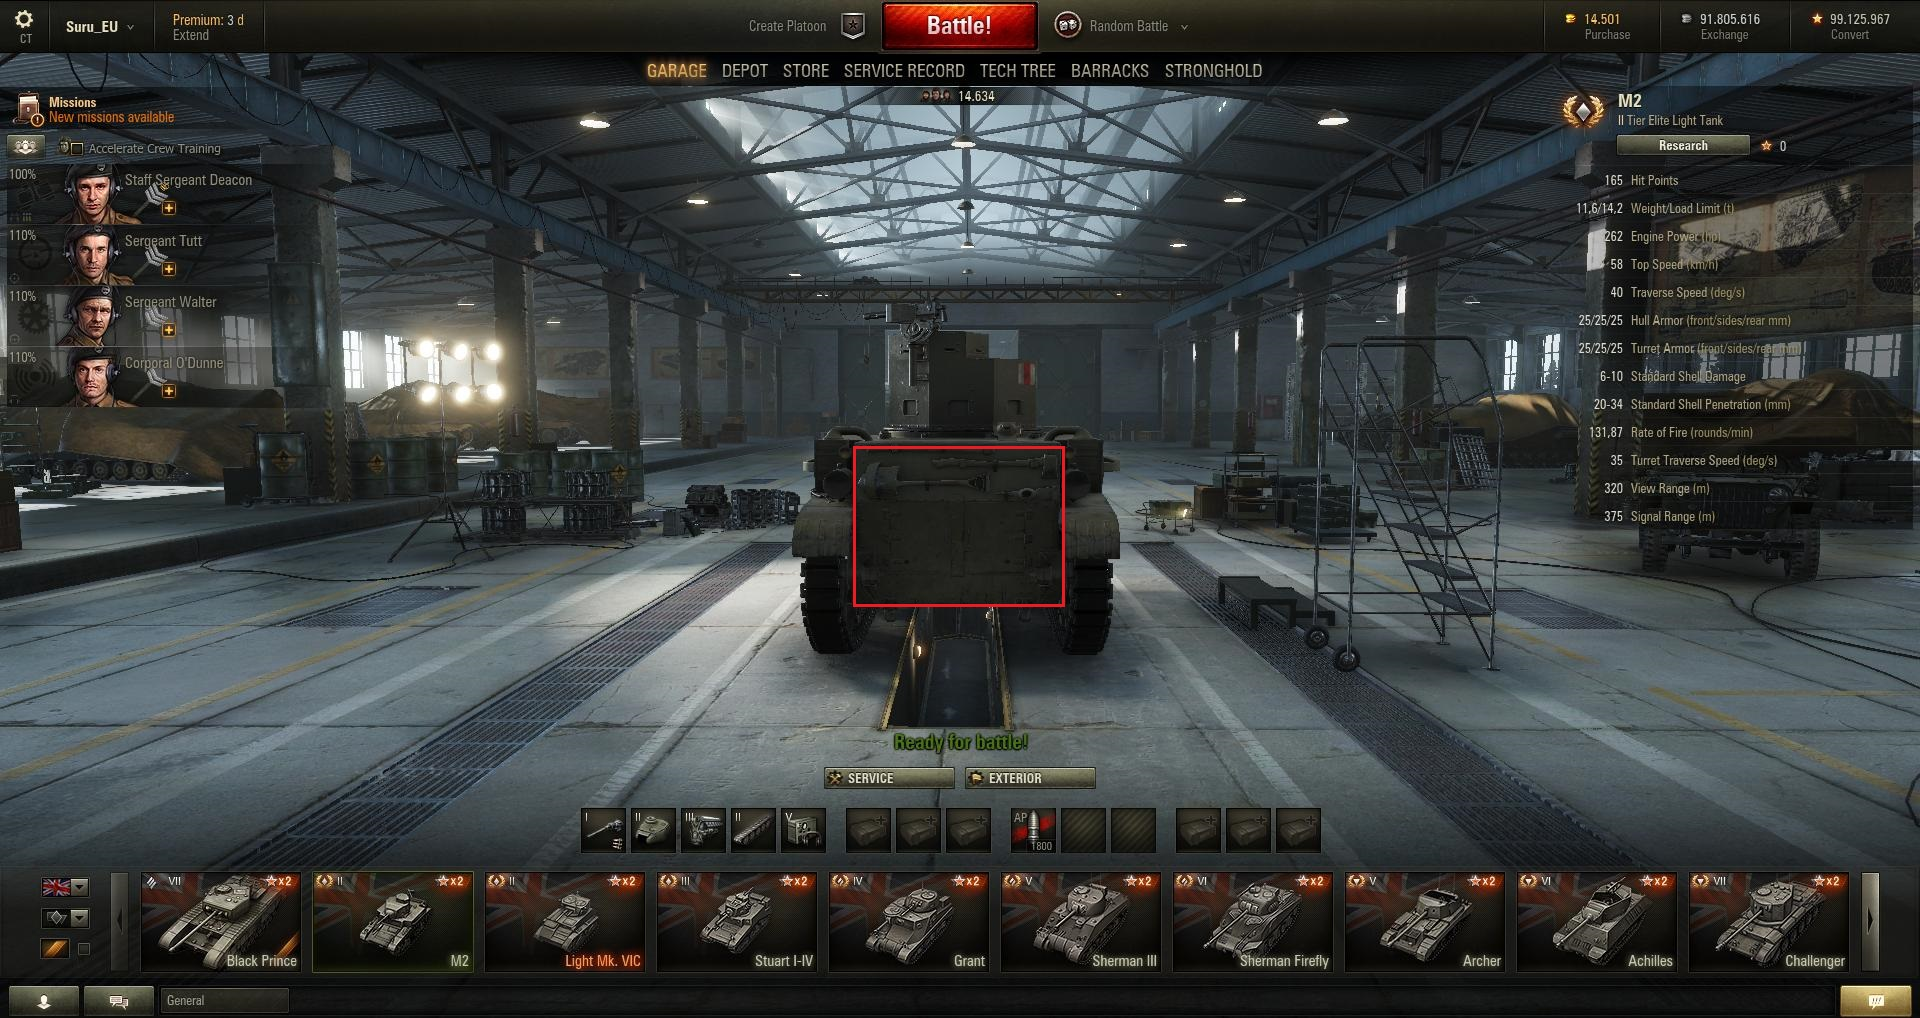 World-of-Tanks Patch-95 M2-Heck-buffed